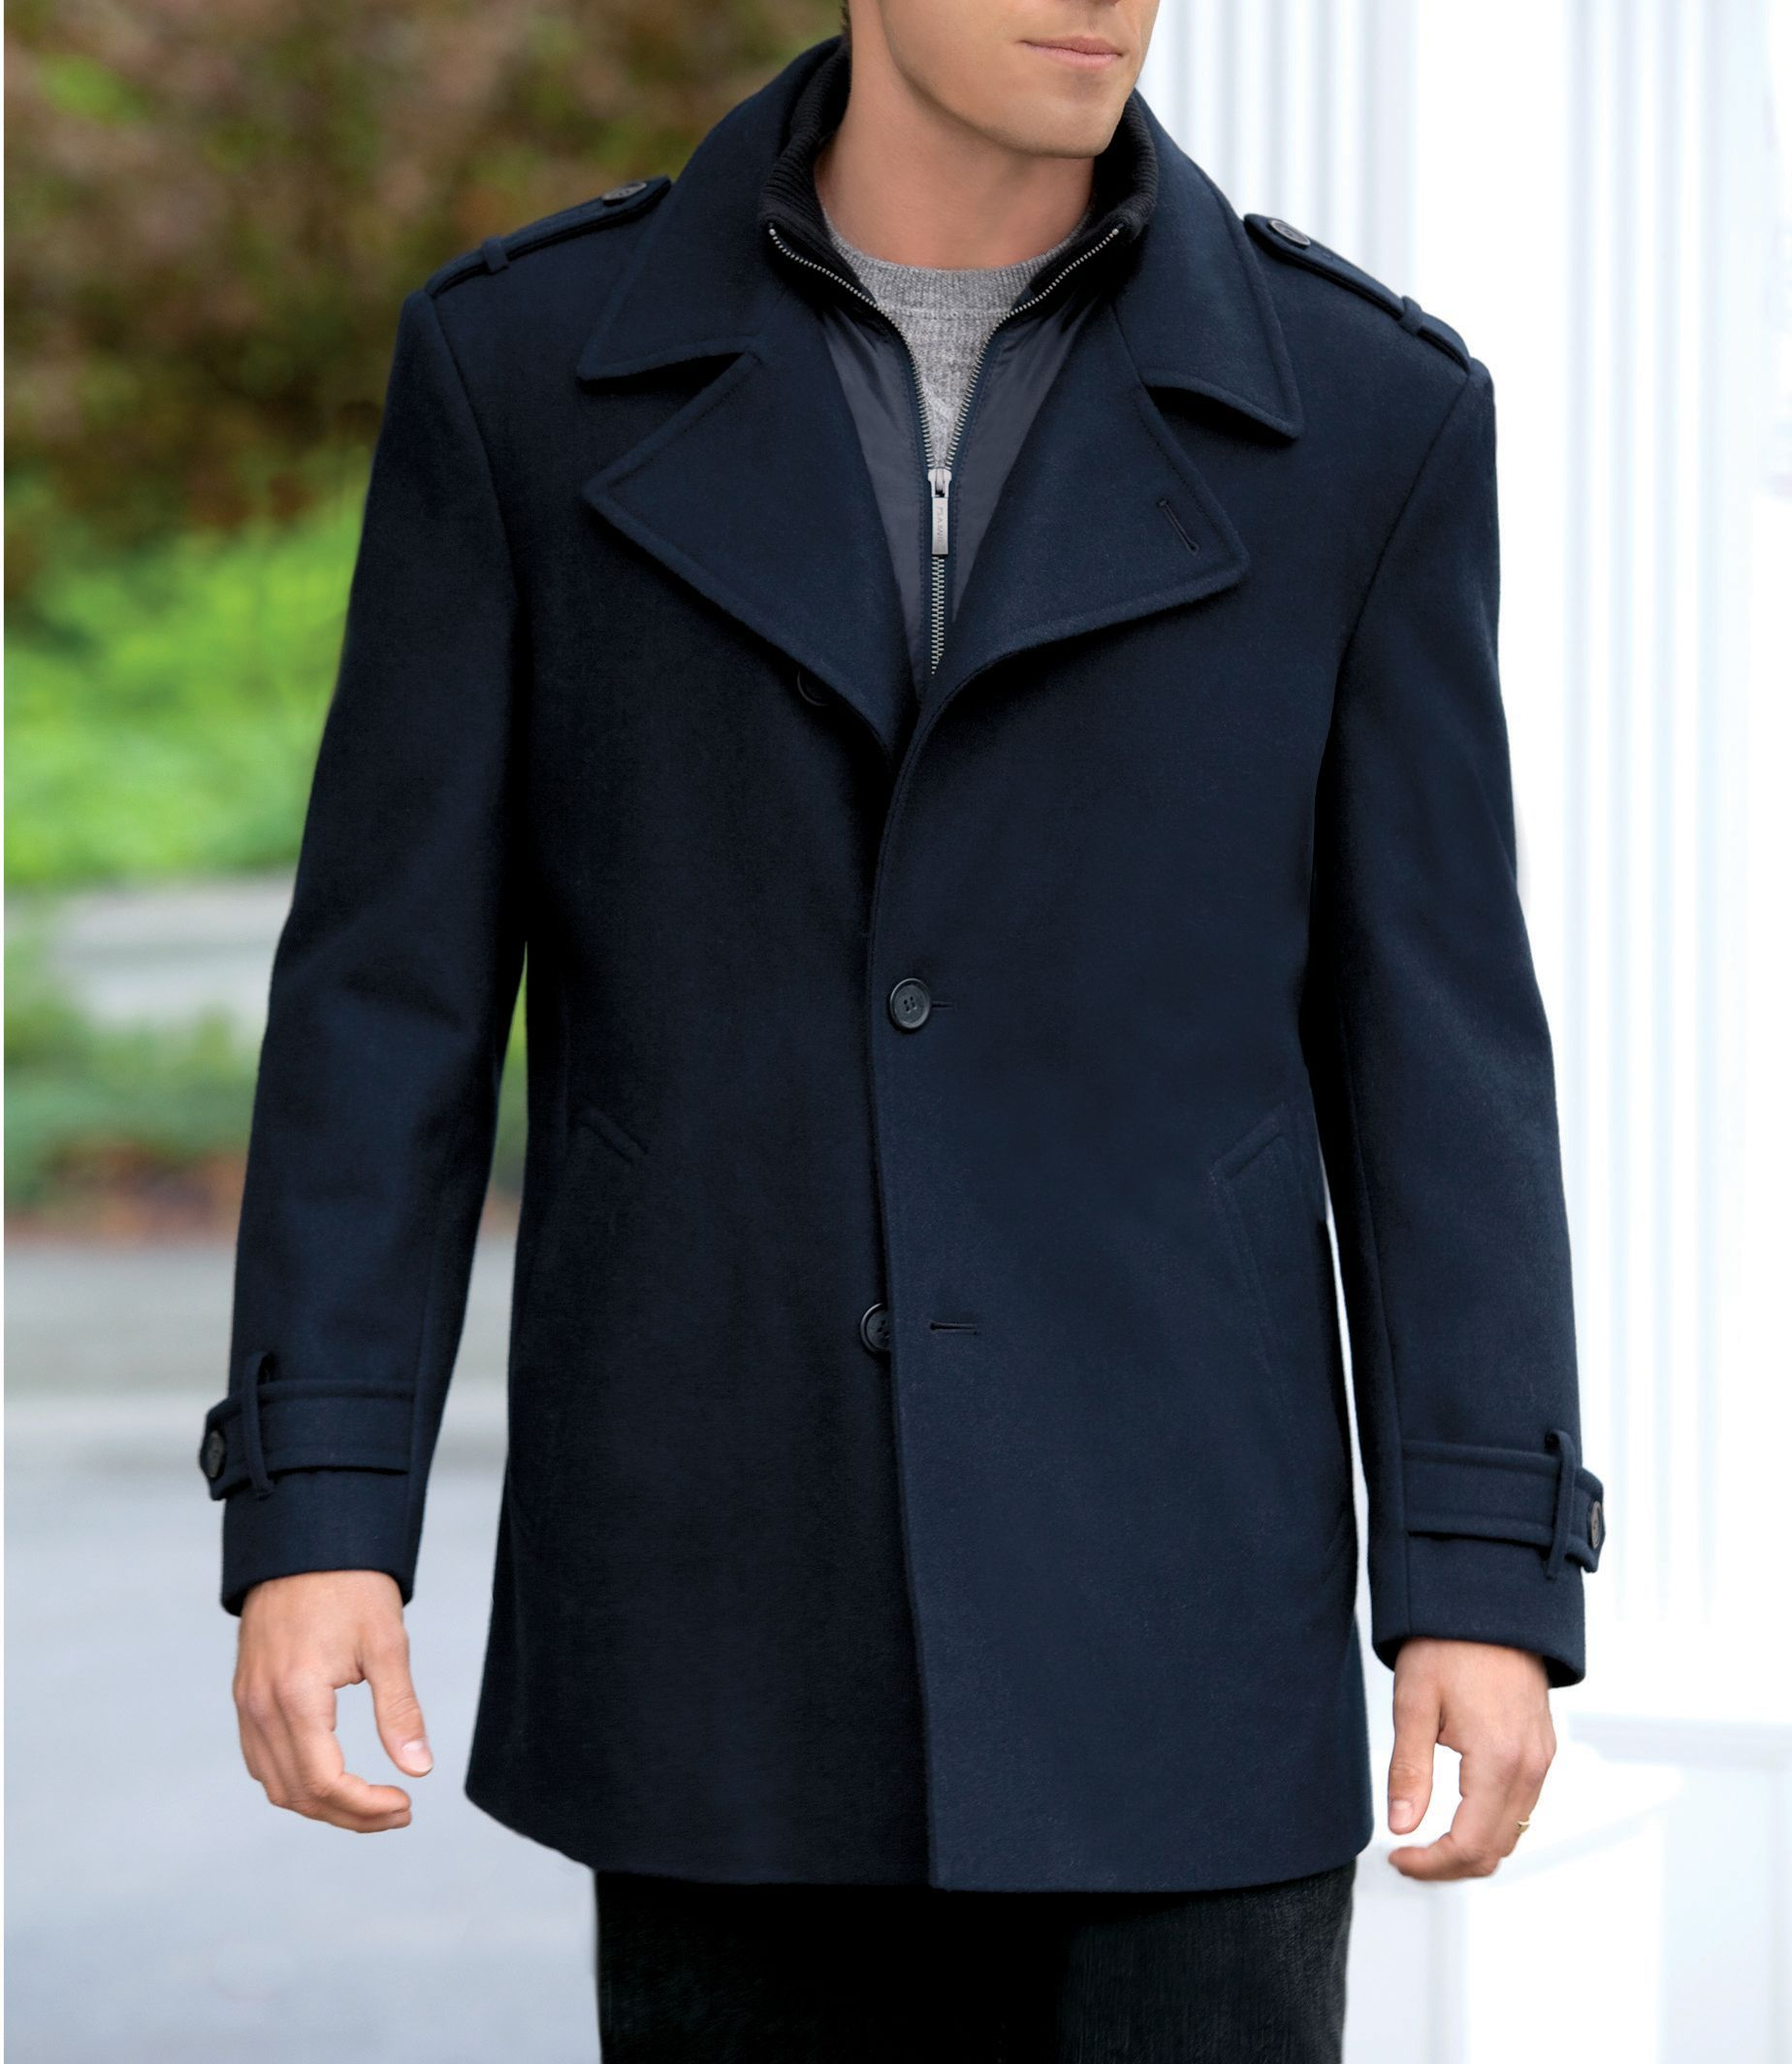 Jos. A. Bank Traditional Fit Wool Peacoat CLEARANCE